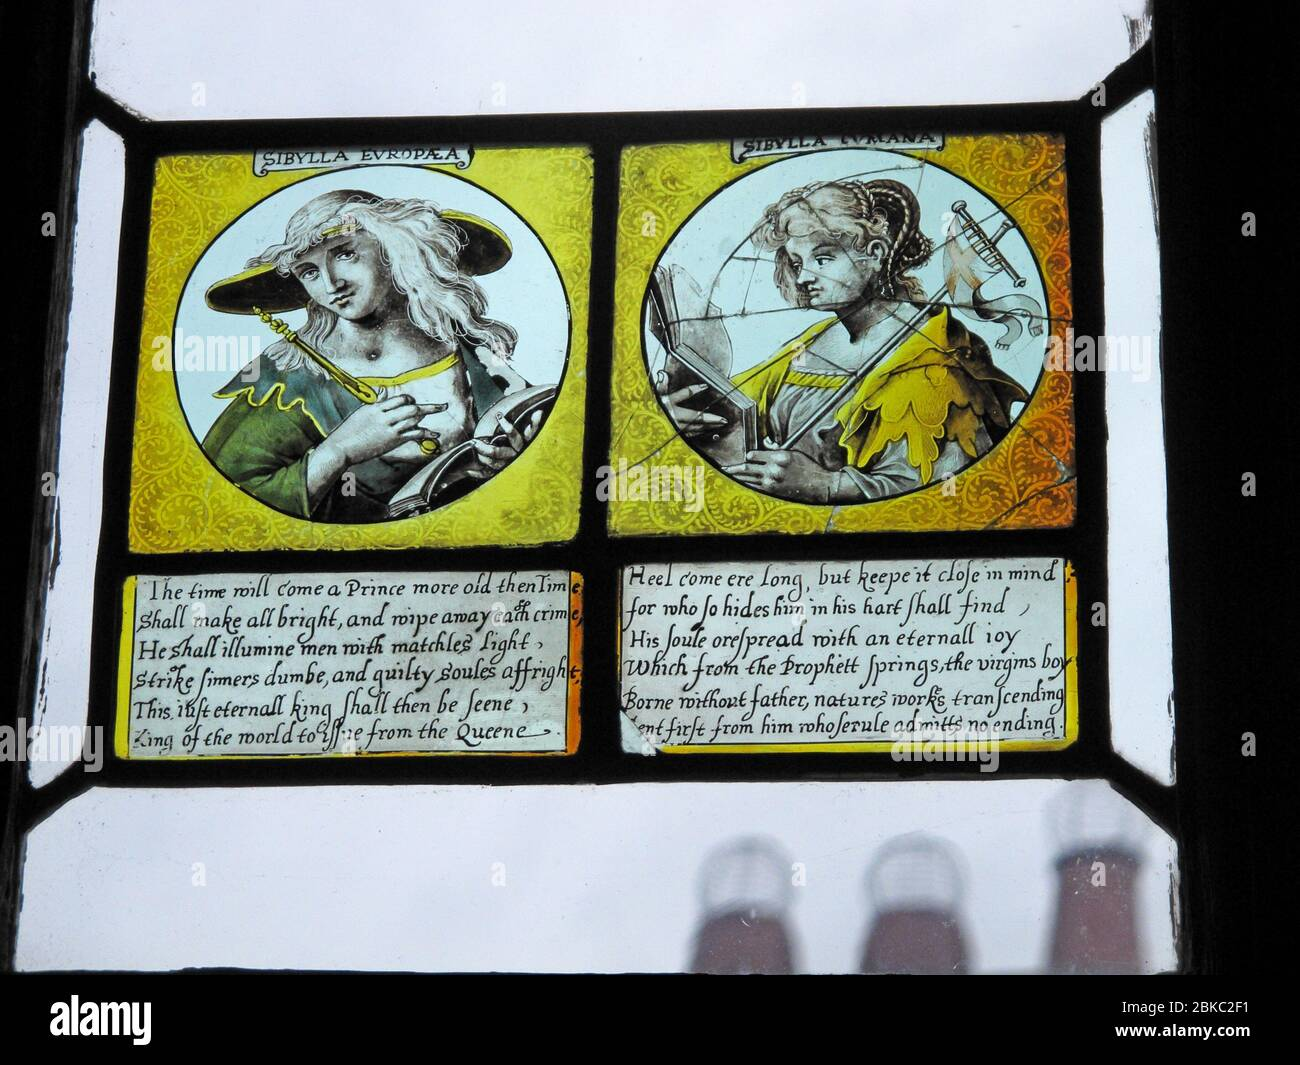 HotpixUK,@HotpixUK,GoTonySmith,Sibylla Europea stained glass,Sibylla Europea,The time will come a prince more old than time,He shall illume men with matchles light,King of the world to flee from the Queen,Heel come ere long,but keepe it close in mind,For who so him in his hart shall find,Which from the prophett springs the virgins boy